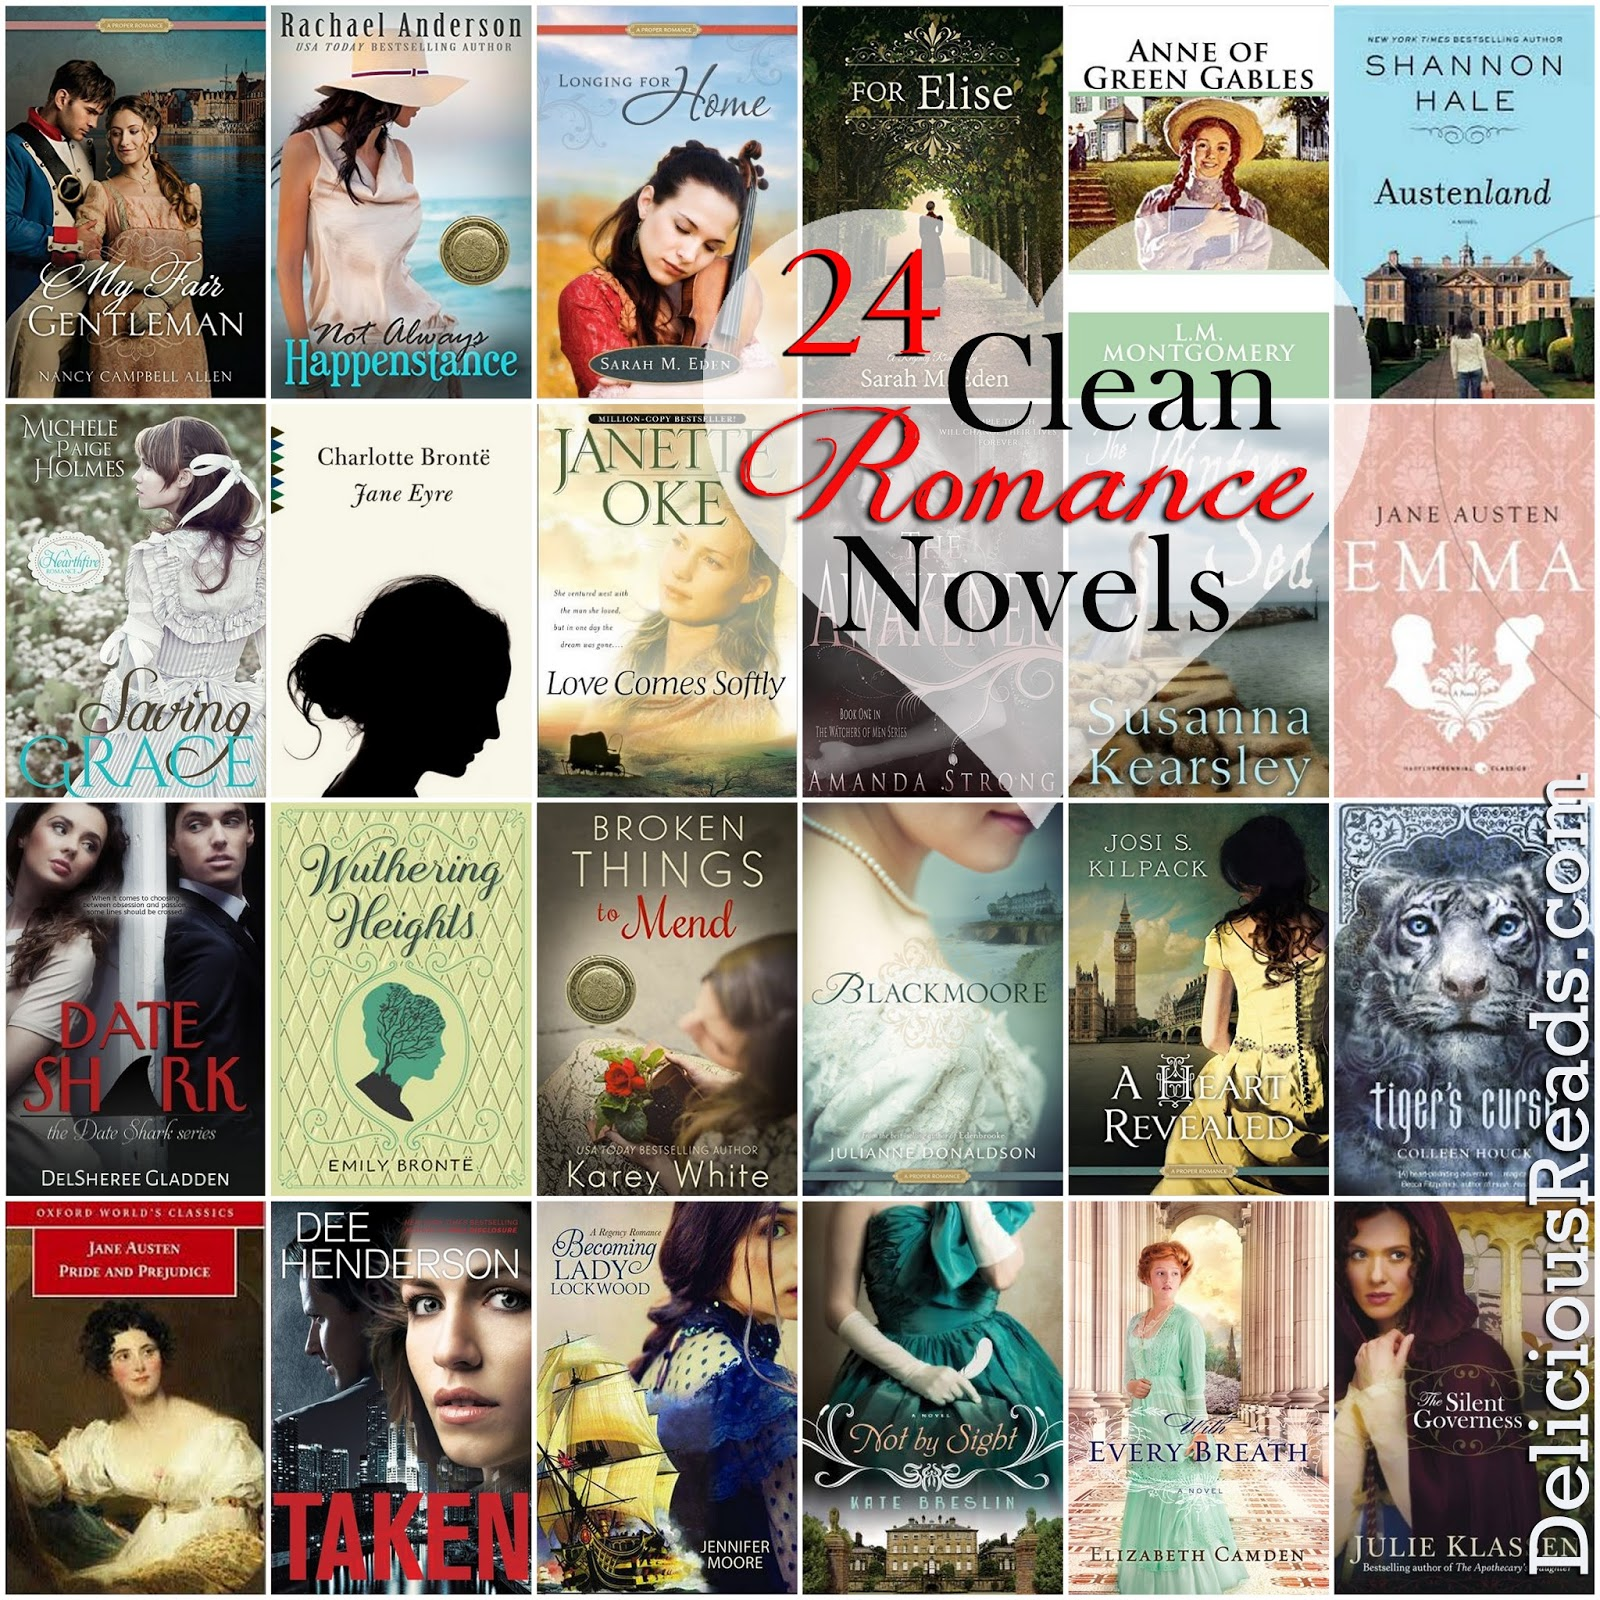 No Sex Books PG Rated Romance Reads